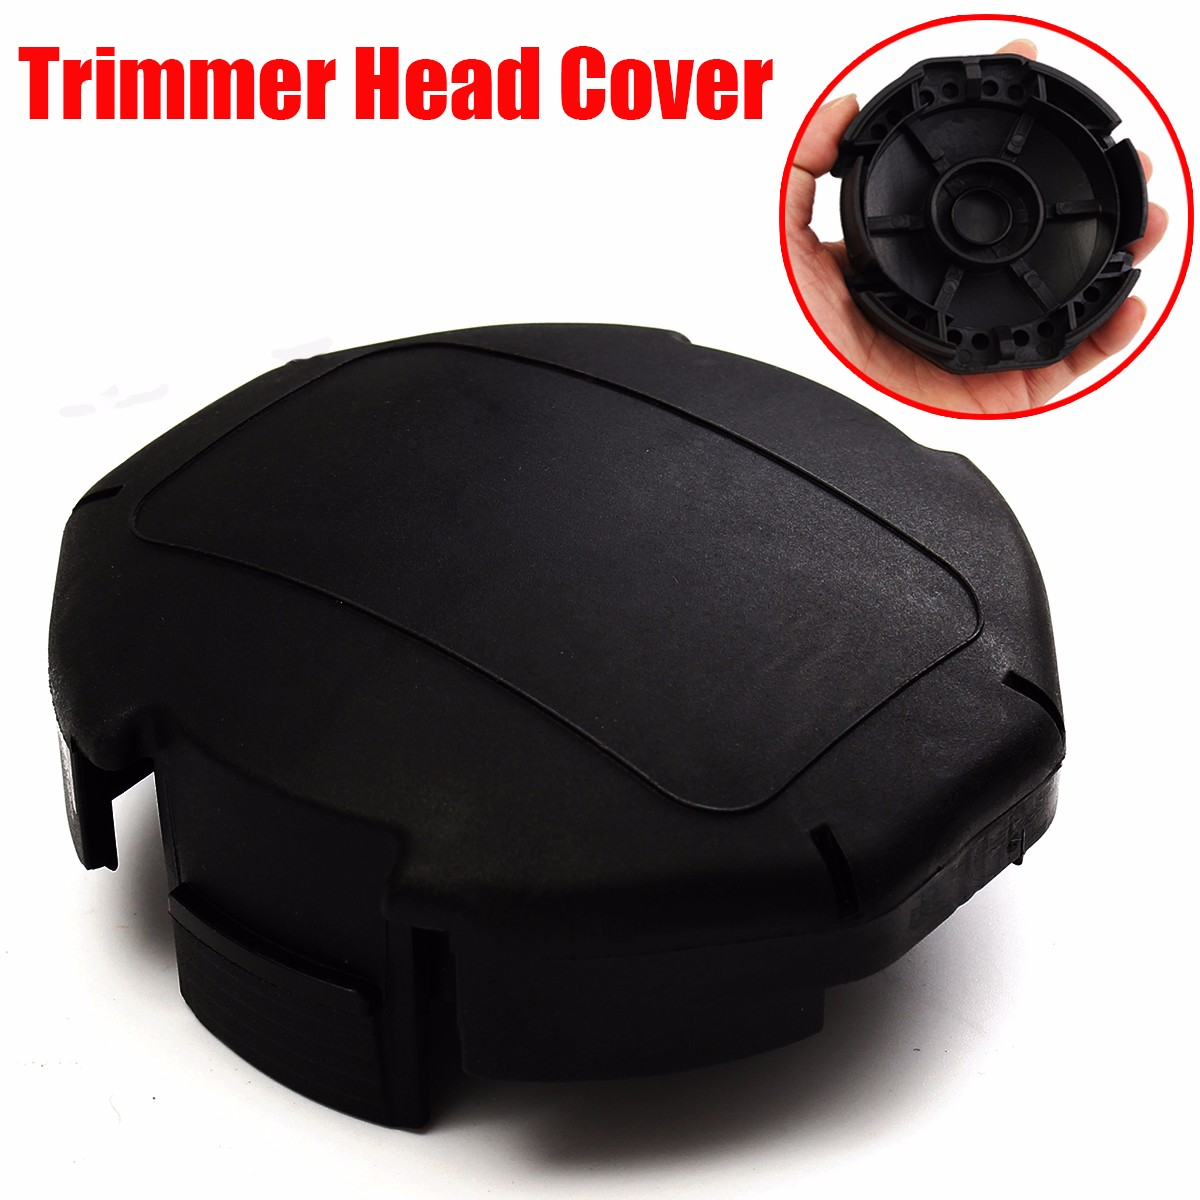 New 3Pcs Doersupp Trimmer Head Cover X472000070 for Shindaiwa Ech o Speed Feed 400 Head Lawn Mower Grass Cutter Tool Parts